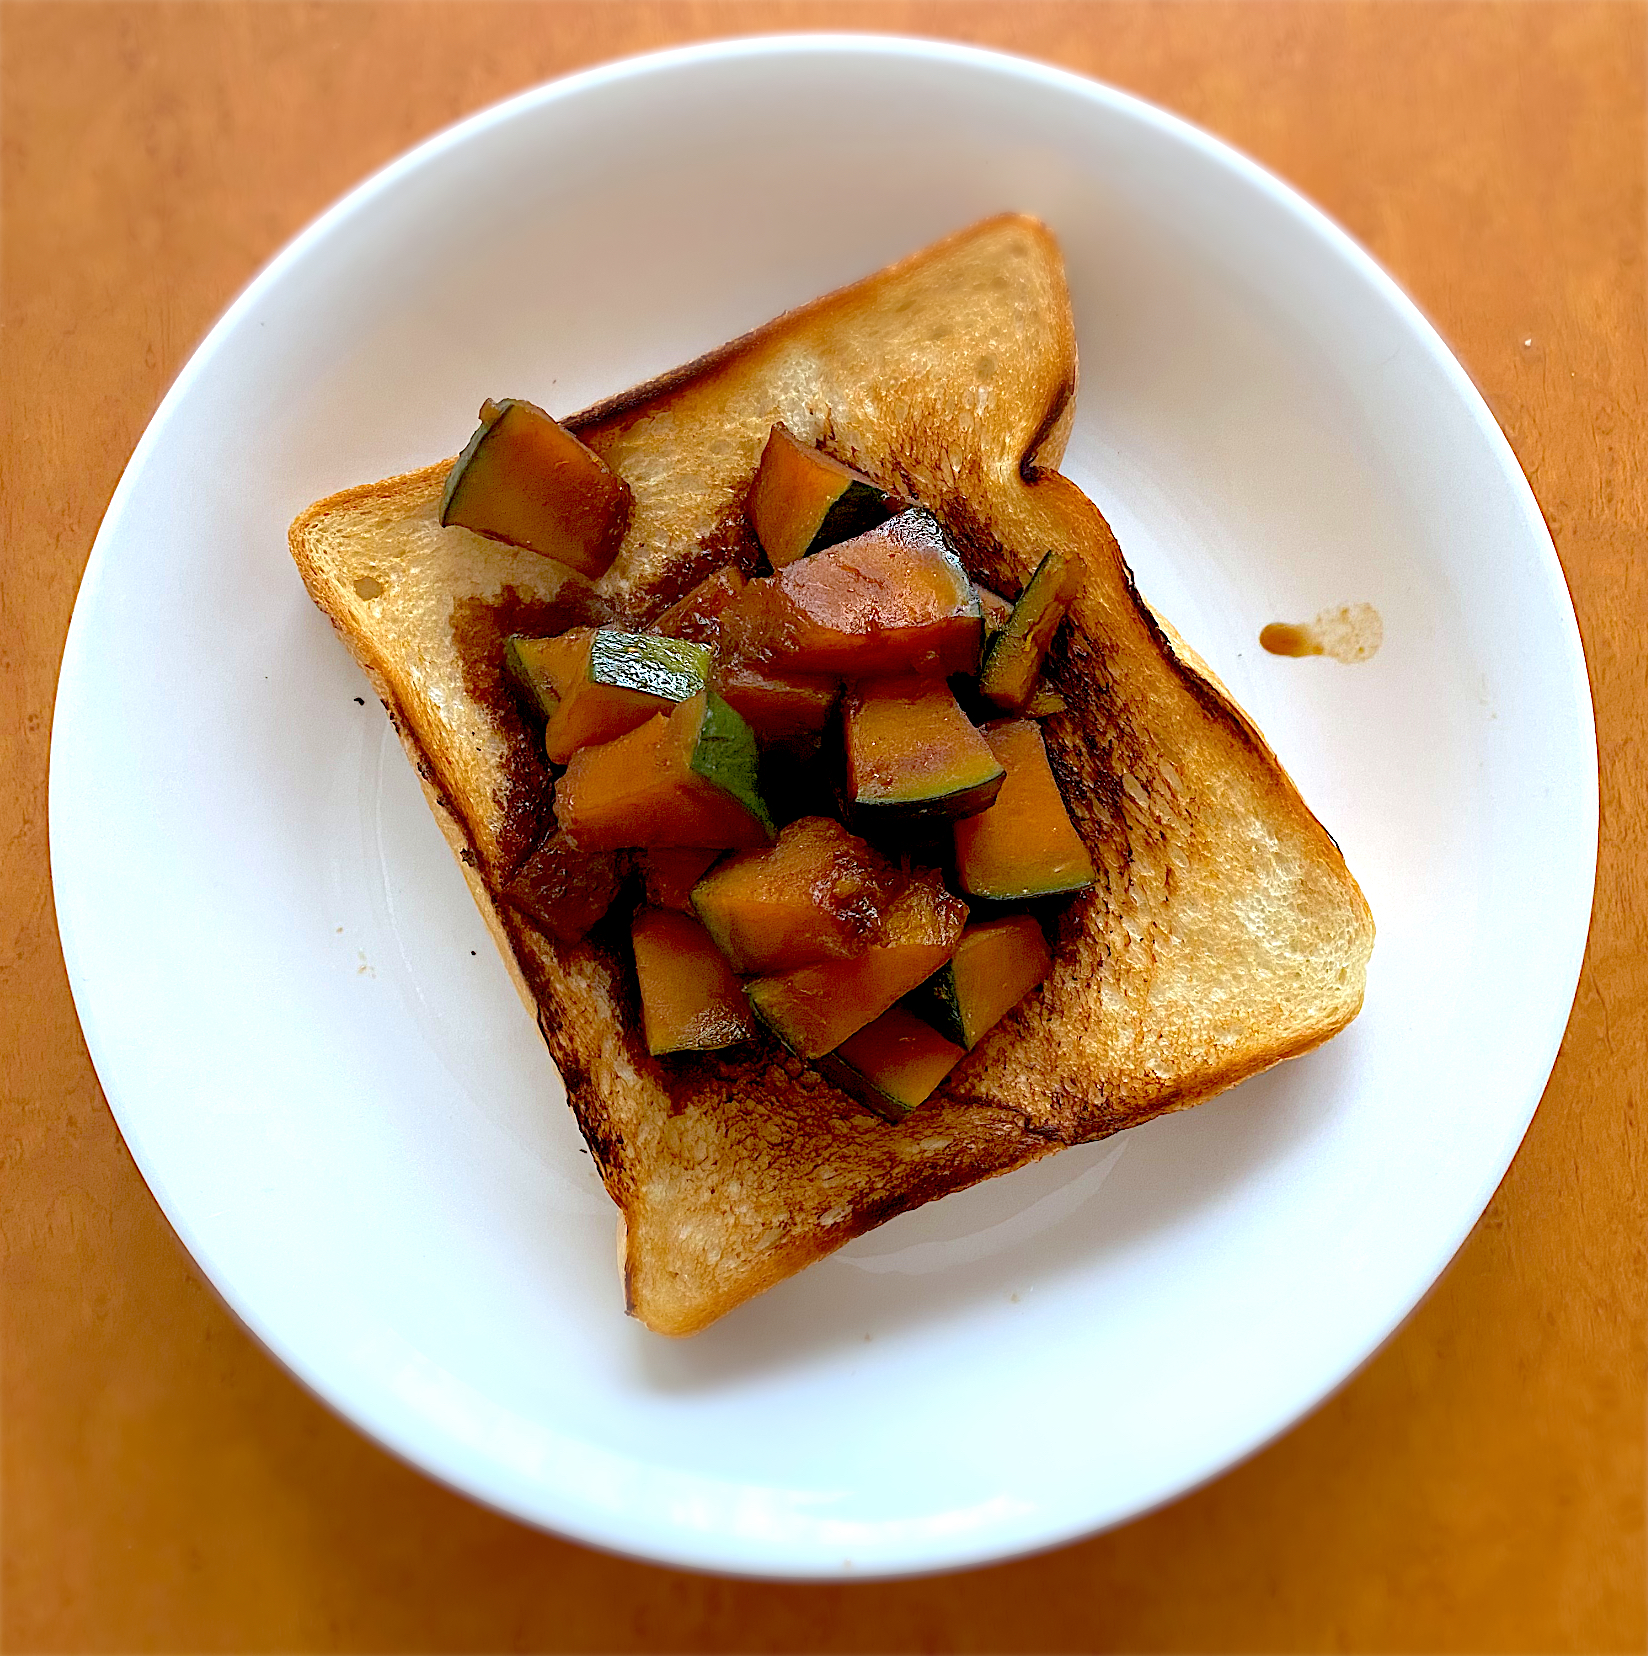 Brunch with bread and boiled pumpkin including brown sugar. Simple and easy food to make.